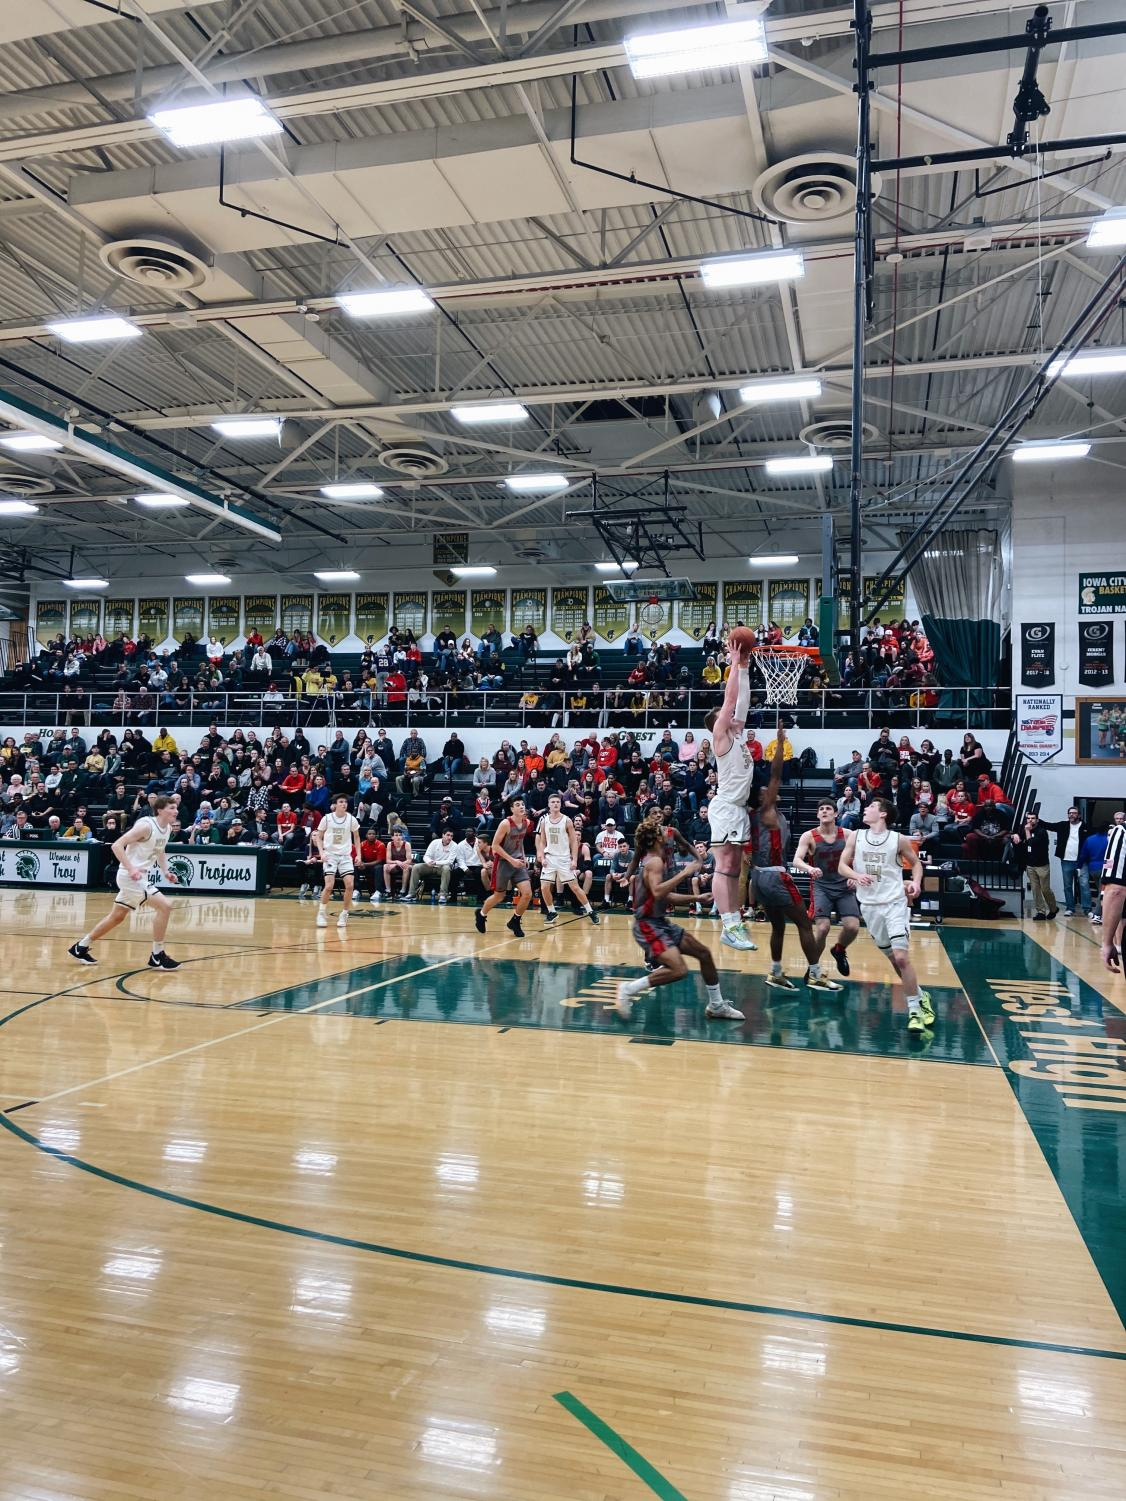 Even+Brauns+%28%2334%29+dunks+against+City%27s+Varsity+Boys+Basketball+Team+during+this+year%27s+City-West+home+game.+%28event+action+%232%29